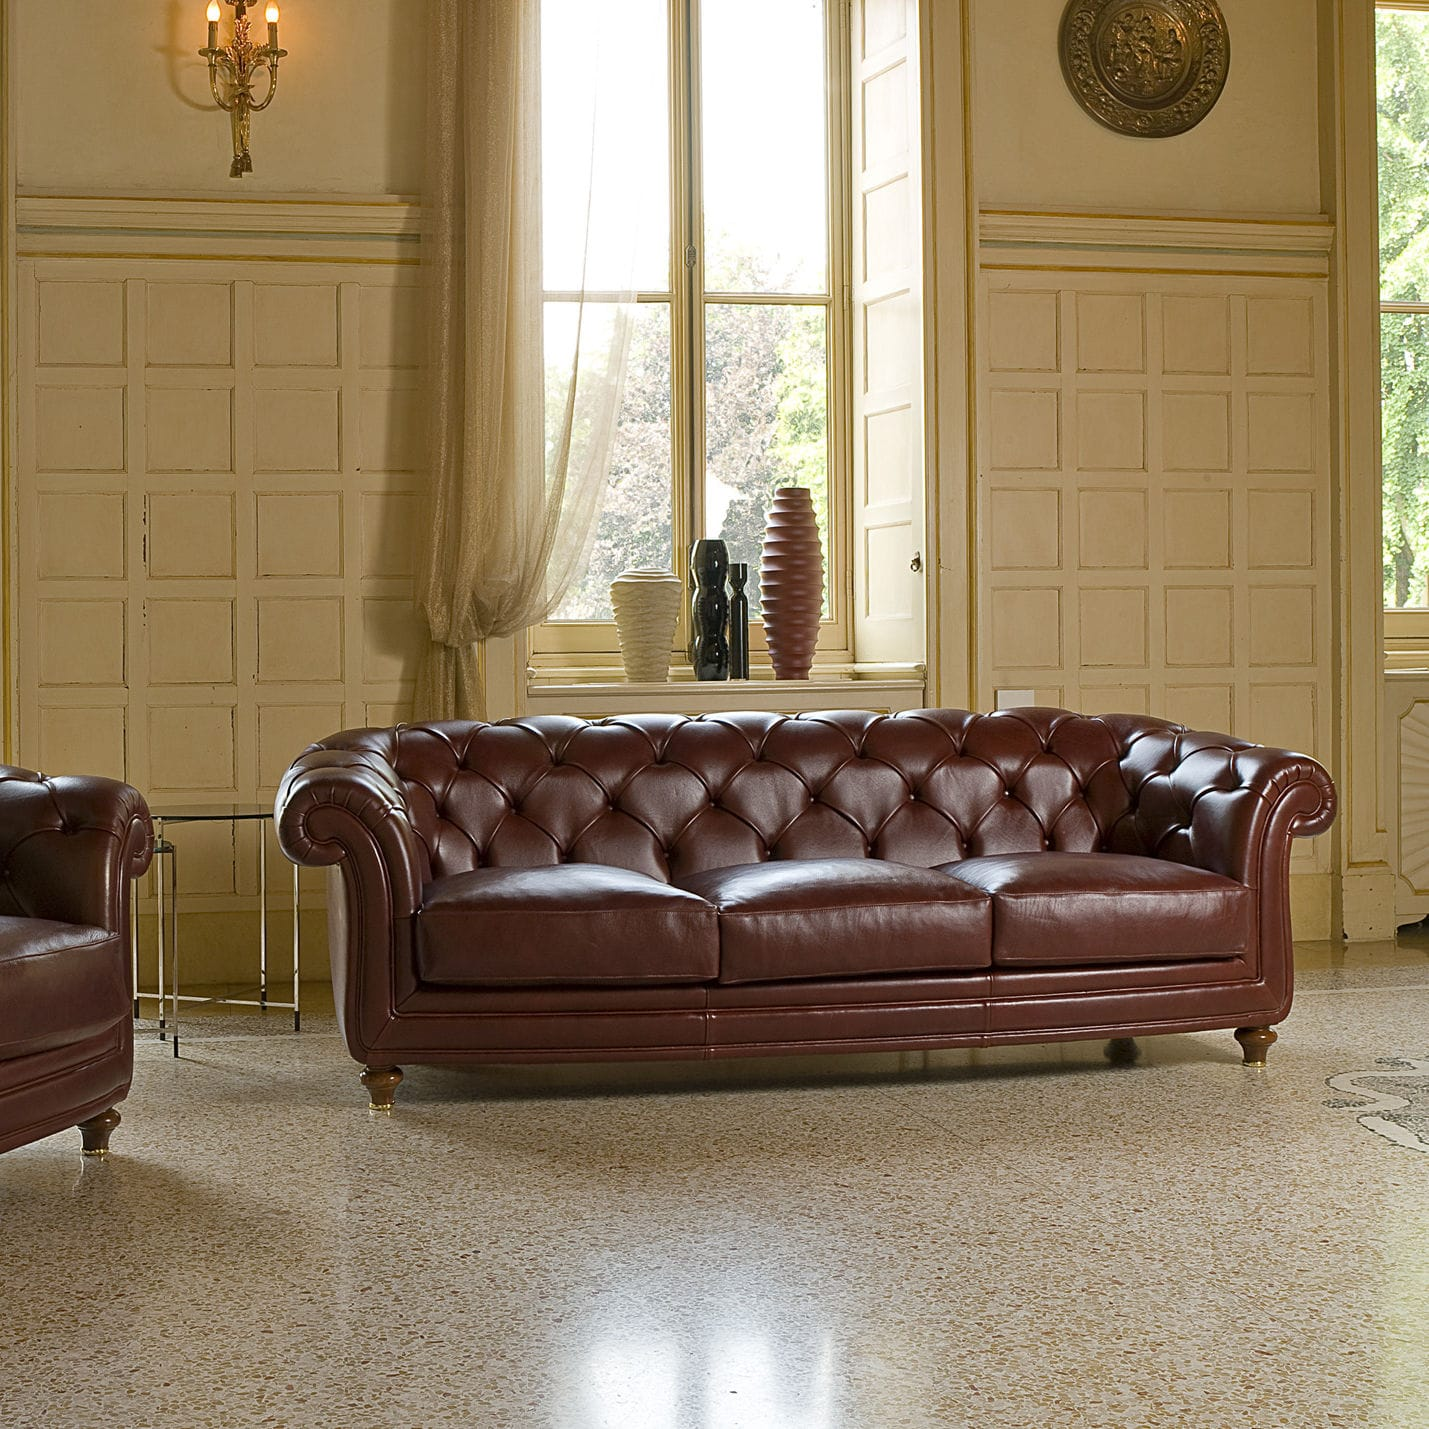 Chesterfield sofa / leather / fabric / 3-seater - OXFORD - BERTO ...